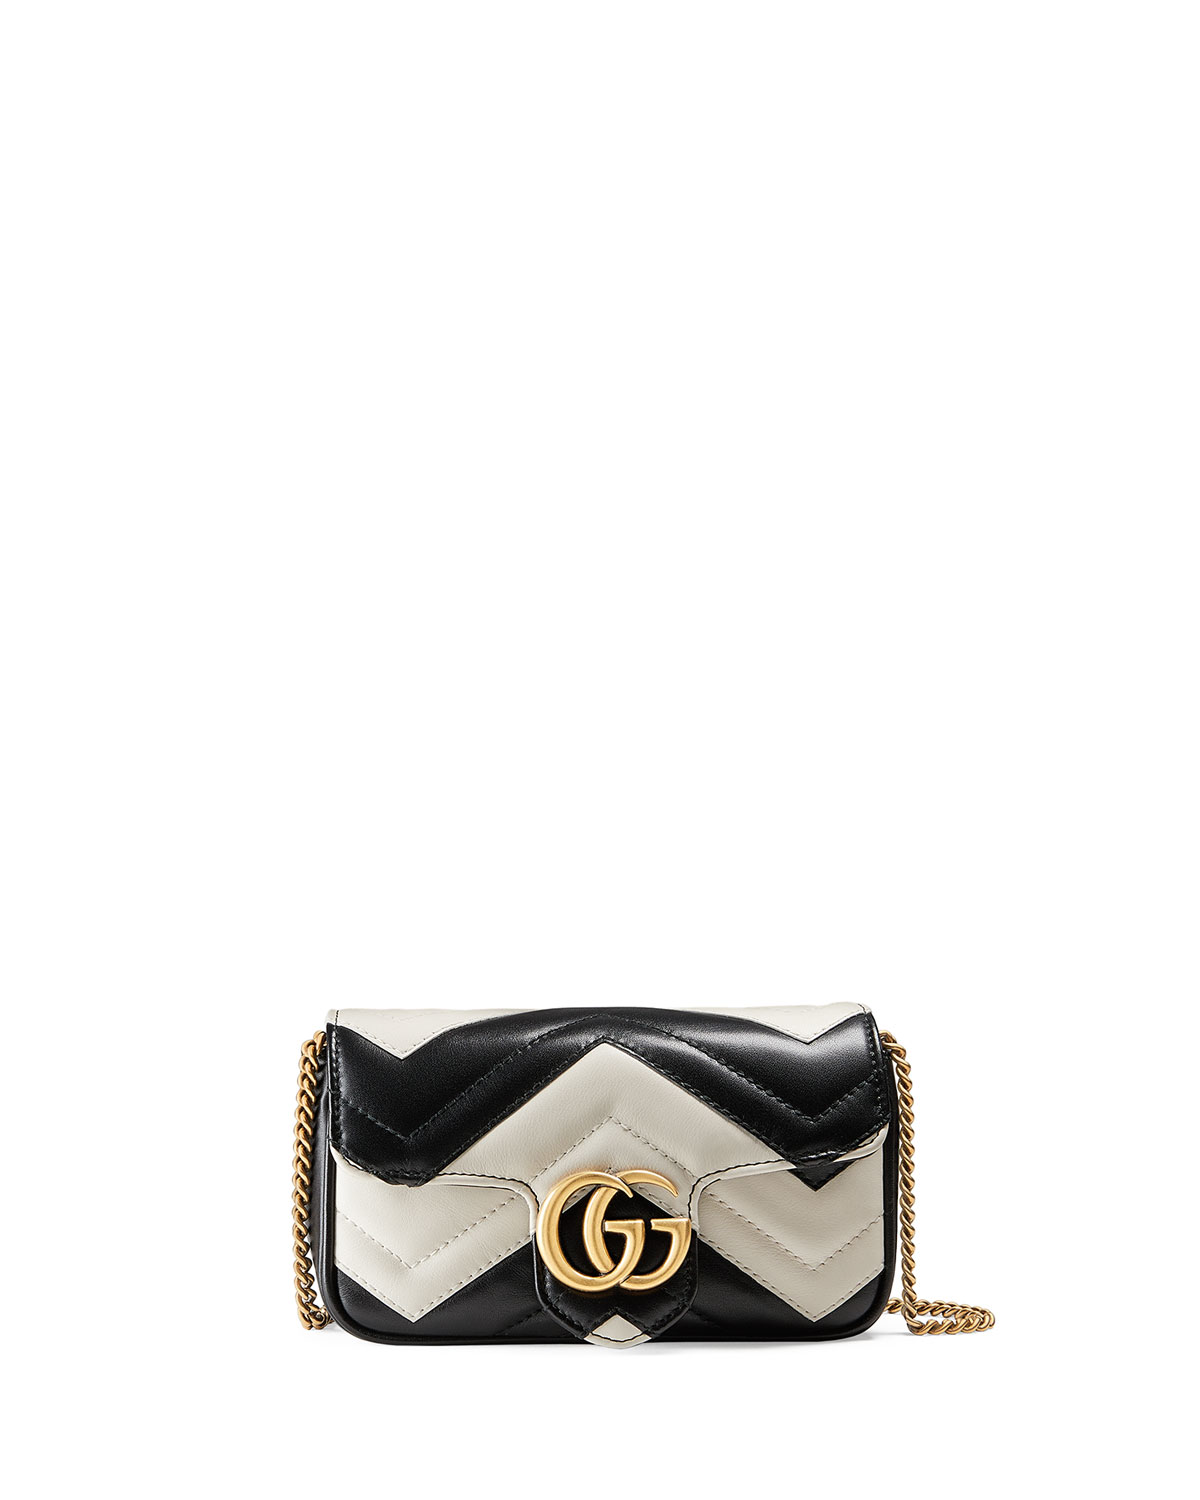 fea03df3da273e Gucci GG Marmont Matelassé Leather Super Mini Bag, Black/White ...